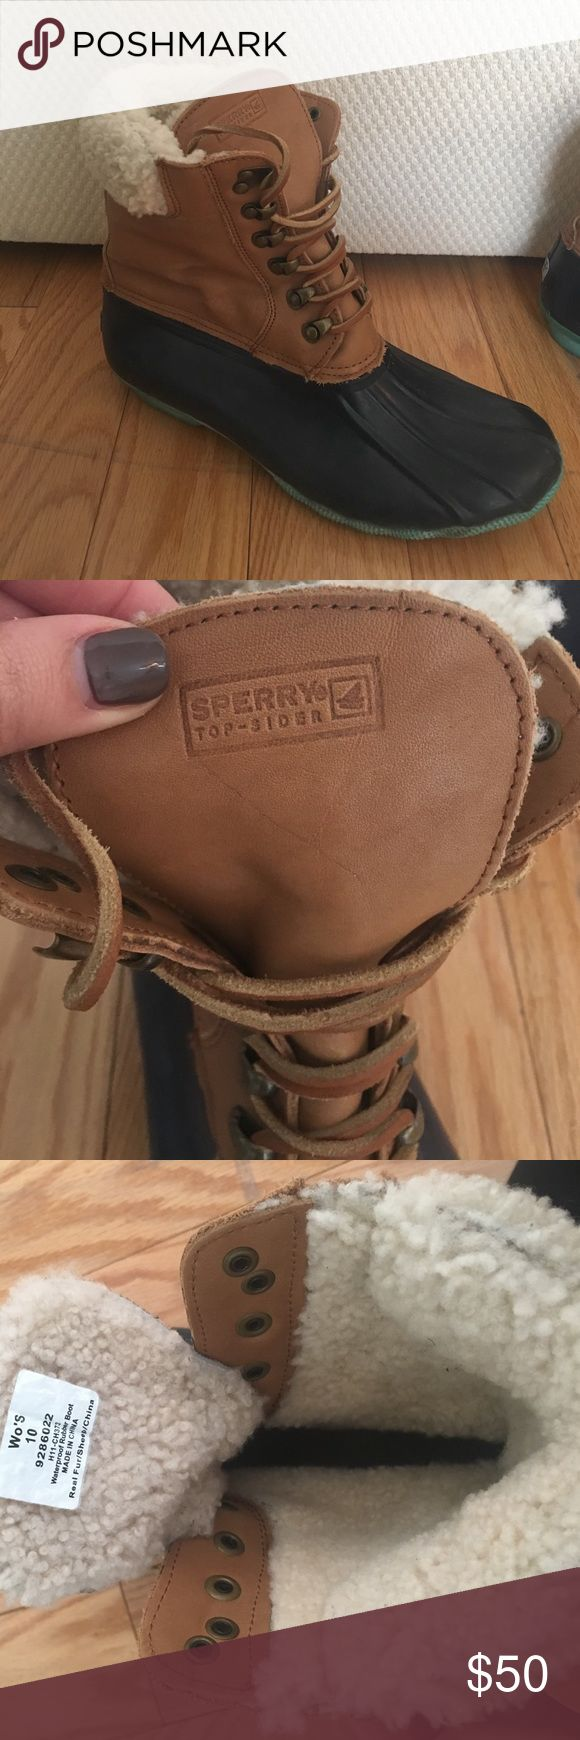 LIMITED EDITION SPERRY TOPSIDER DUCK BOOTS WOMEN'S SIZE 10 SPERRY TOPSIDER DUCK BOOTS. SHEEP FUR. MINT CONDITION. SMOKE-FREE ENVIRONMENT. Sperry Top-Sider Shoes Winter & Rain Boots